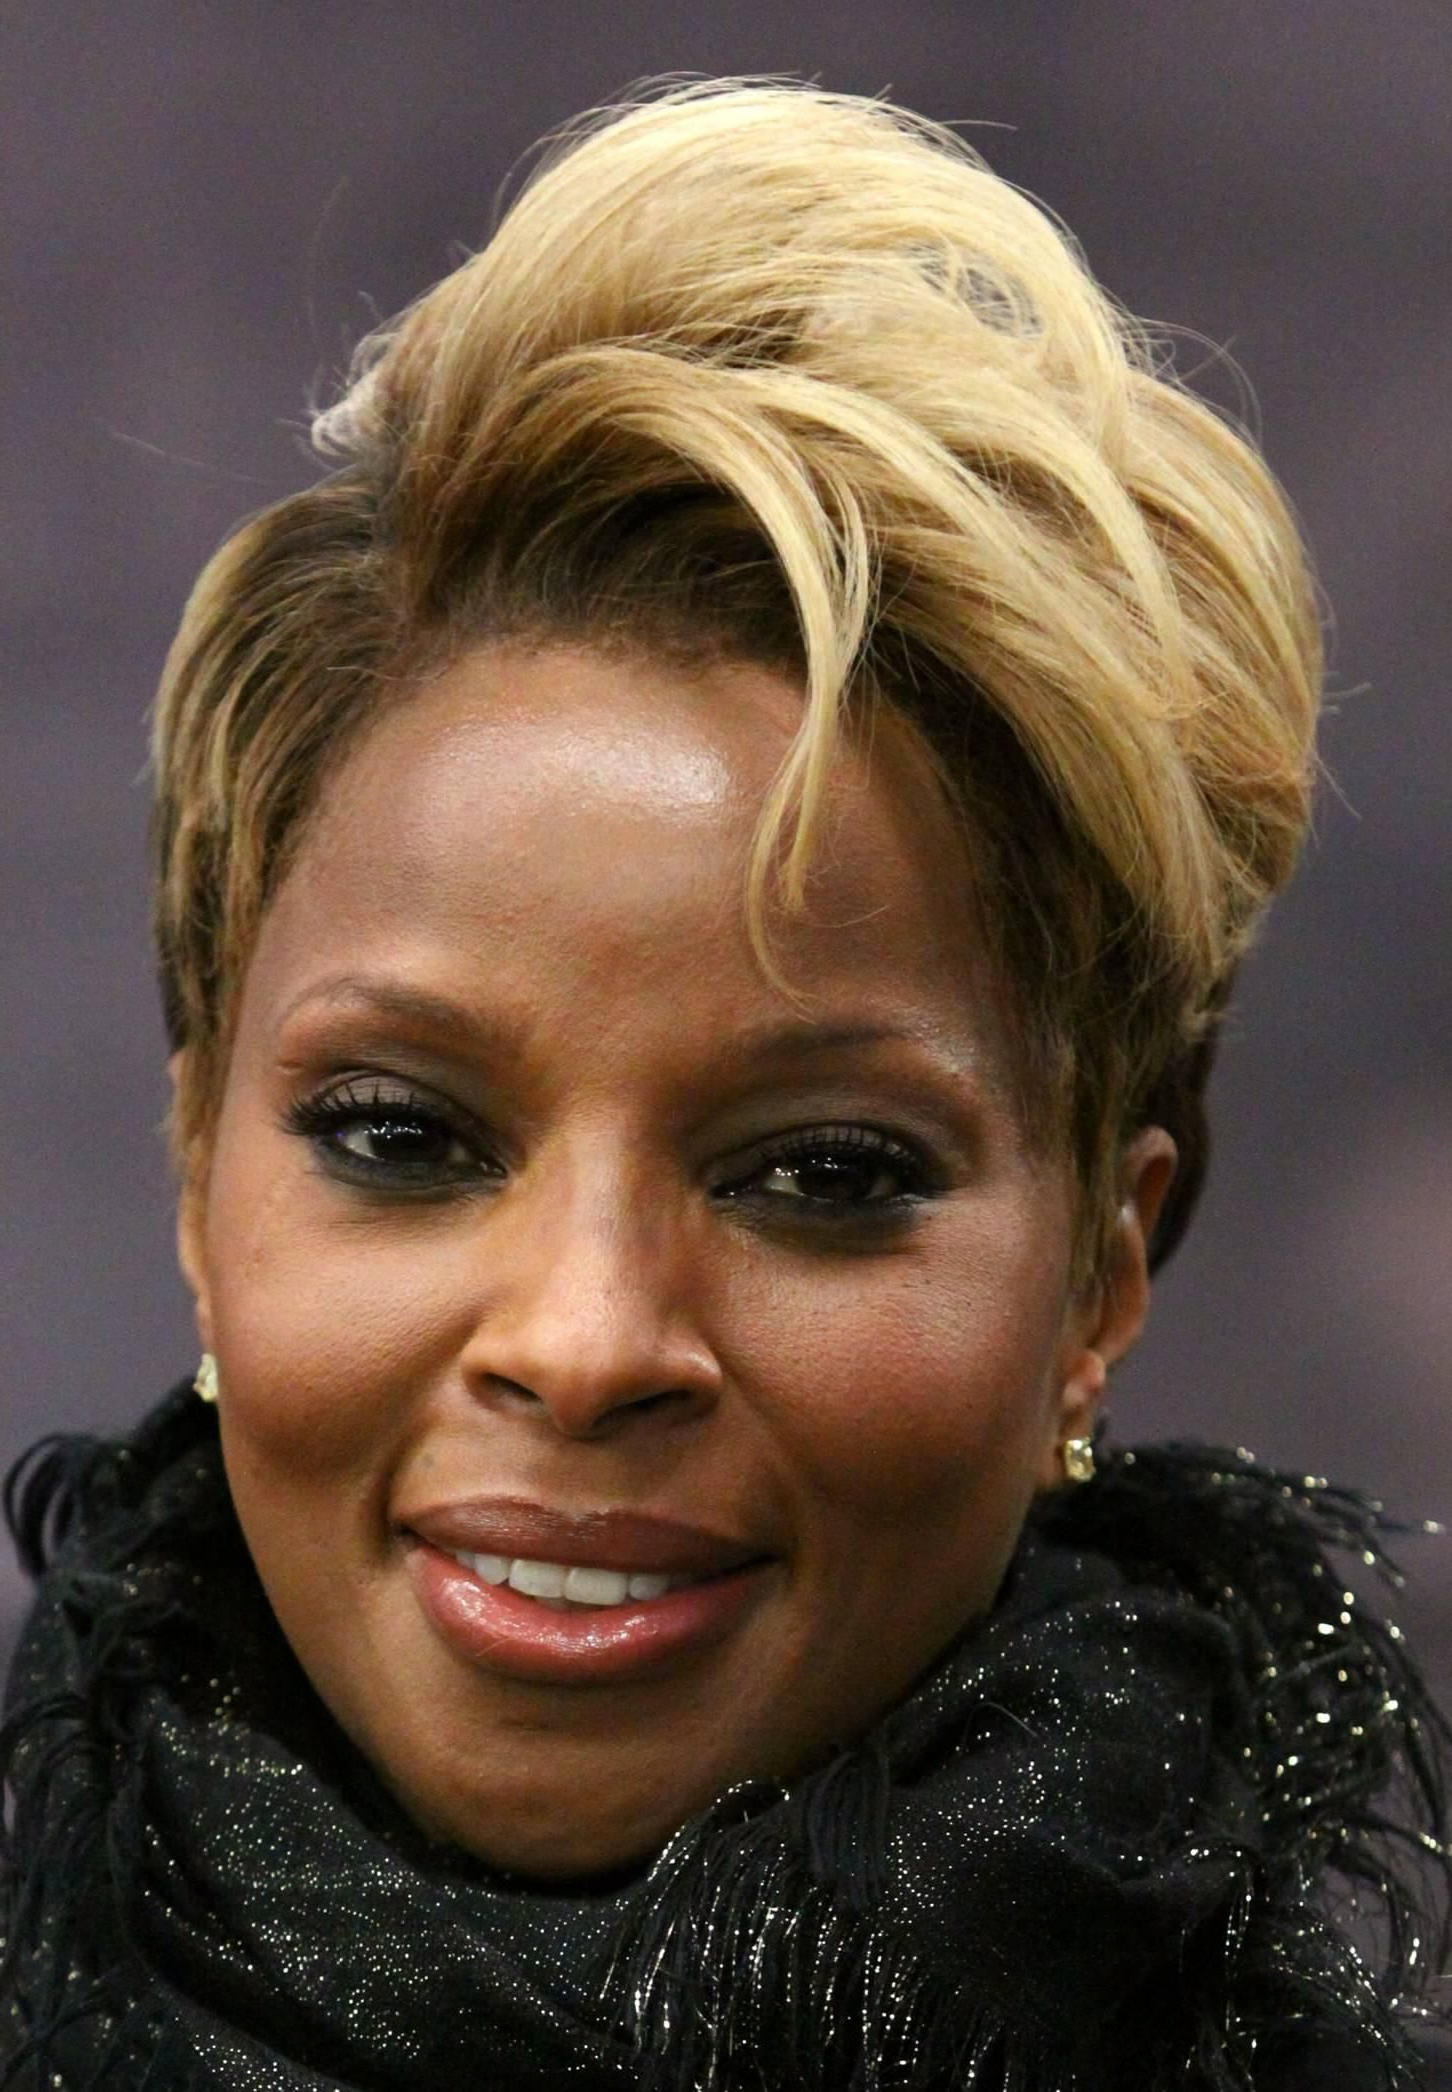 Beautiful Blonde Short Haircut Oval Face African American | New Look Pertaining To Short Haircuts For Black Women With Oval Faces (View 17 of 25)